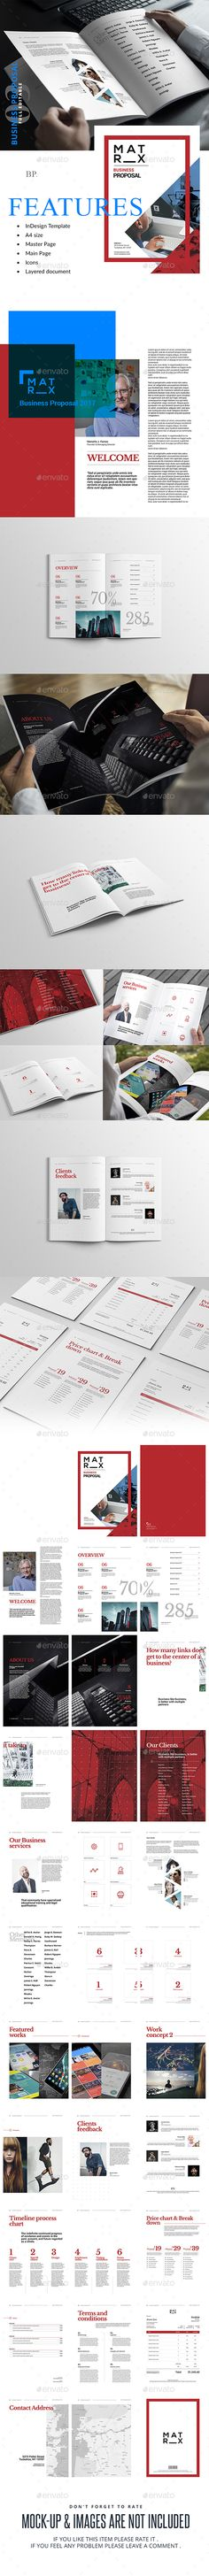 Business Proposal Template Single Page US Letter Proposals - business proposal download